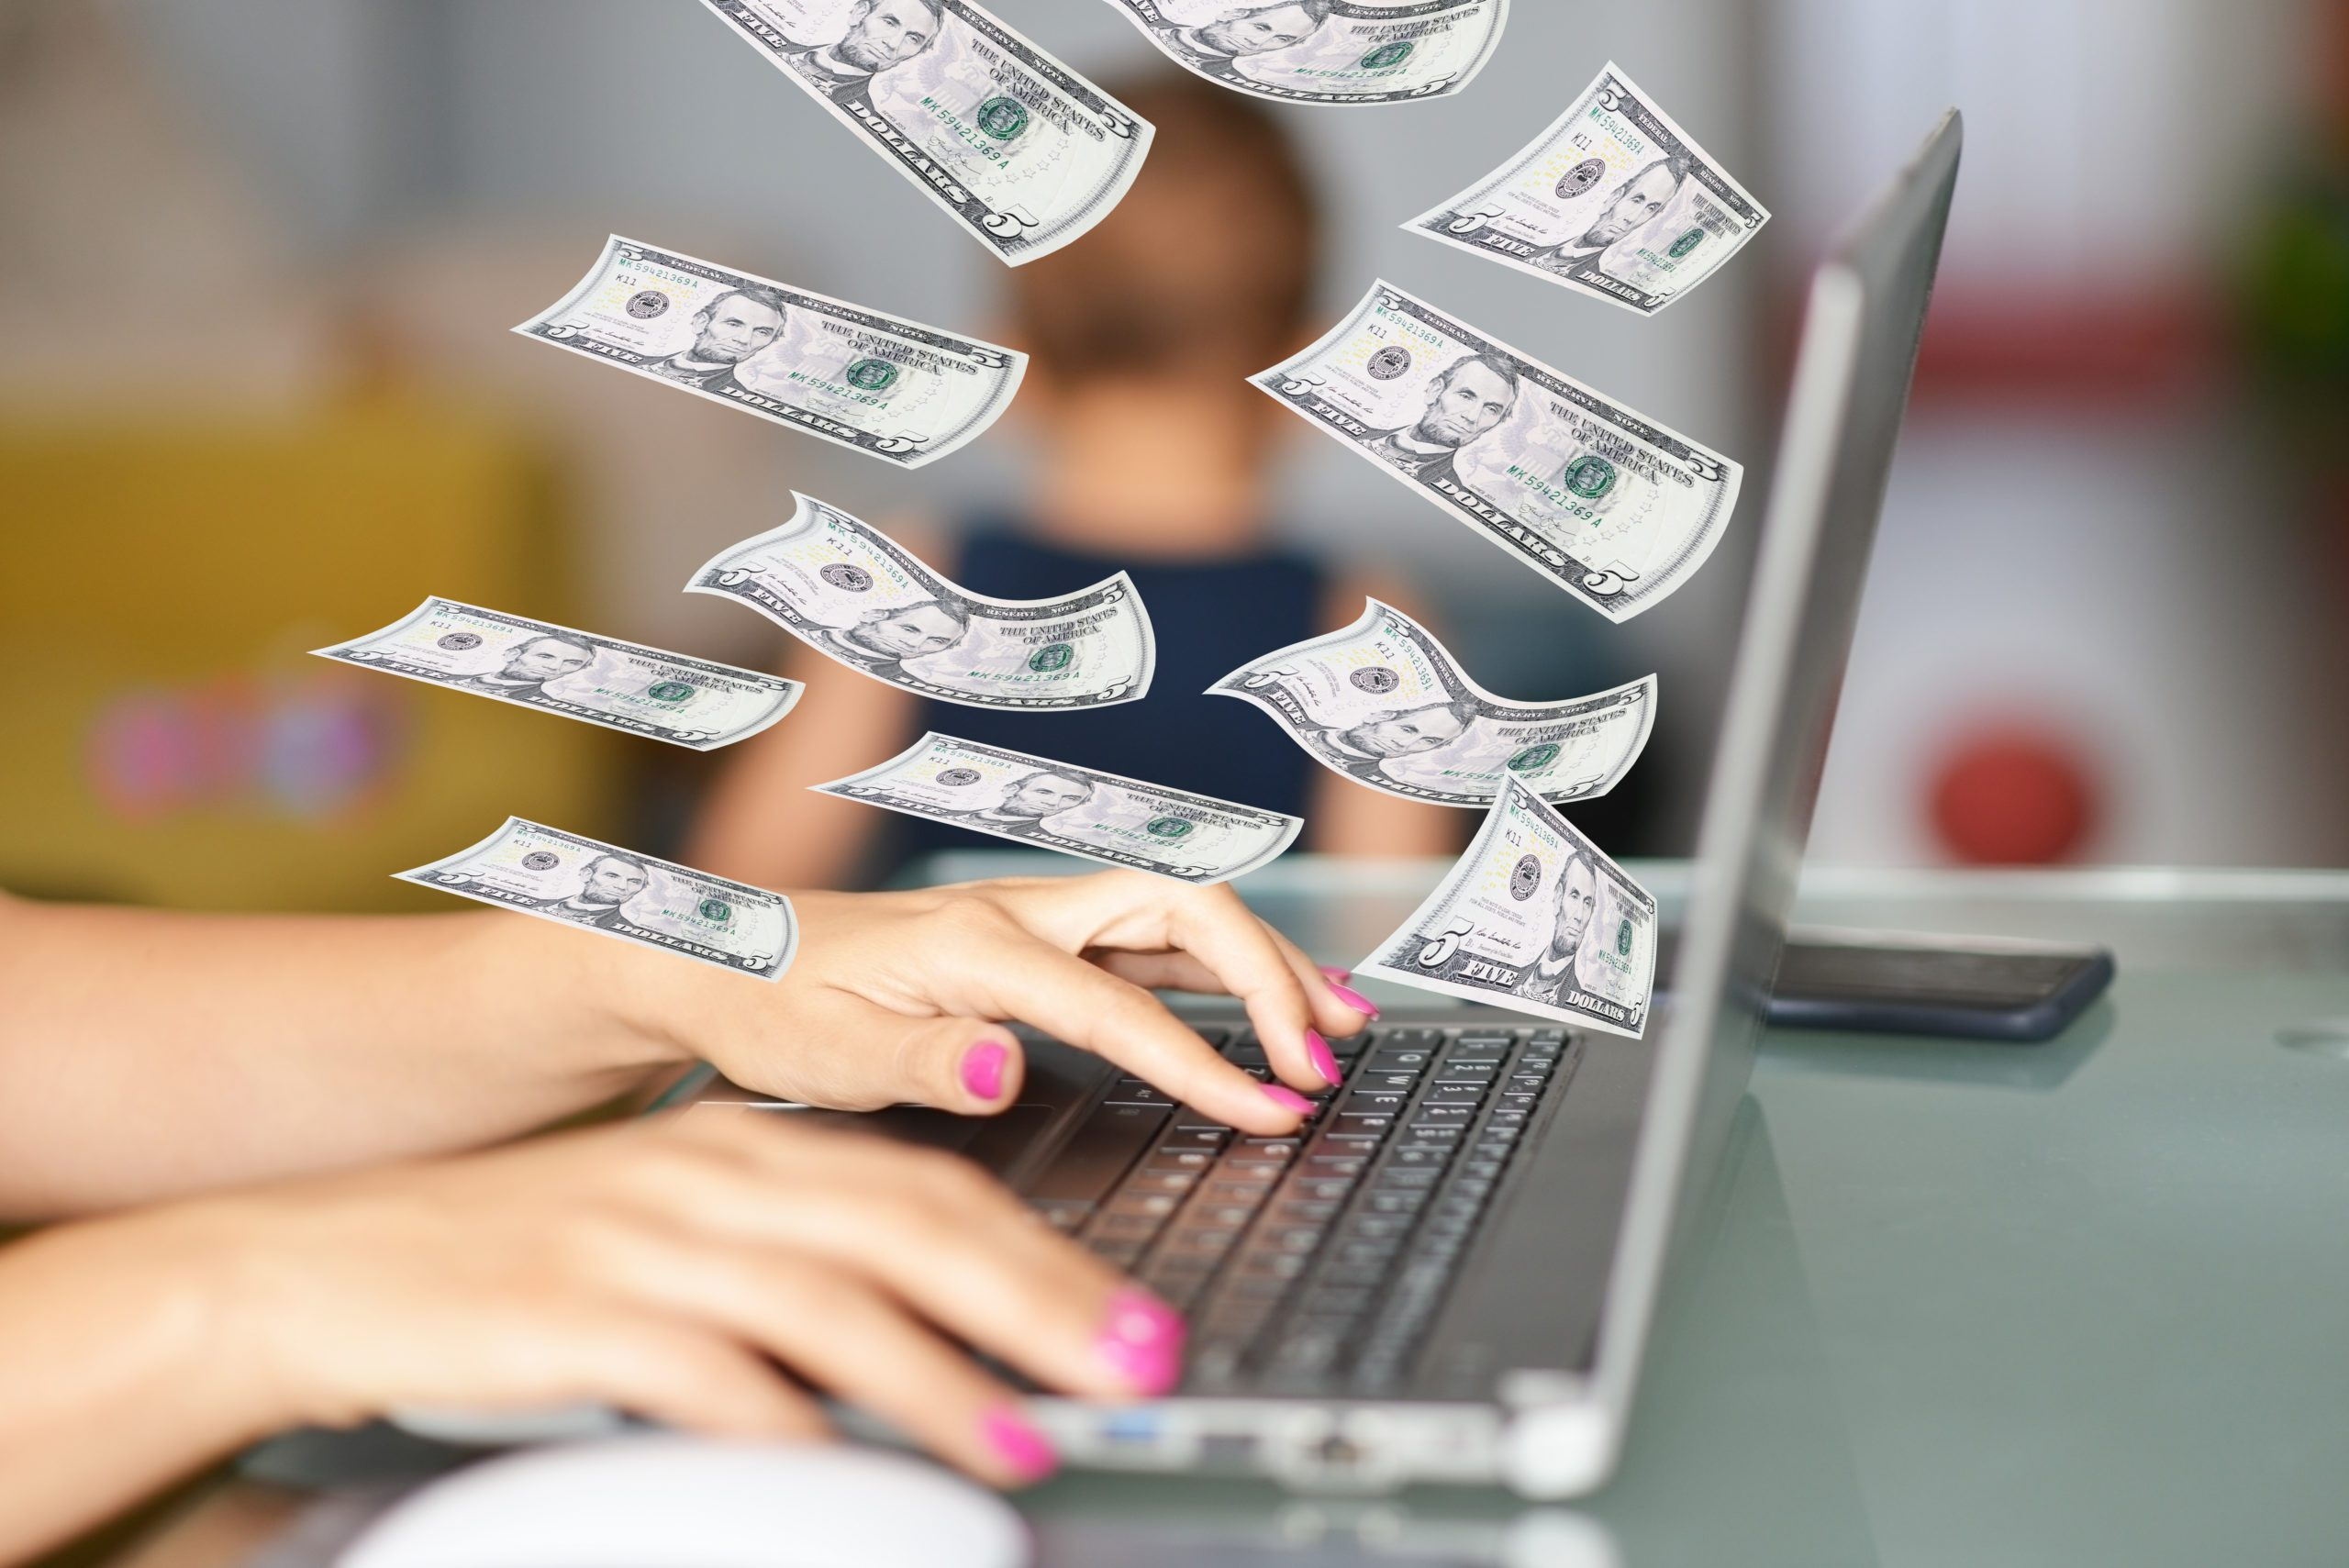 Work-from-home mom on her laptop with dollars flying around as her child plays in the background